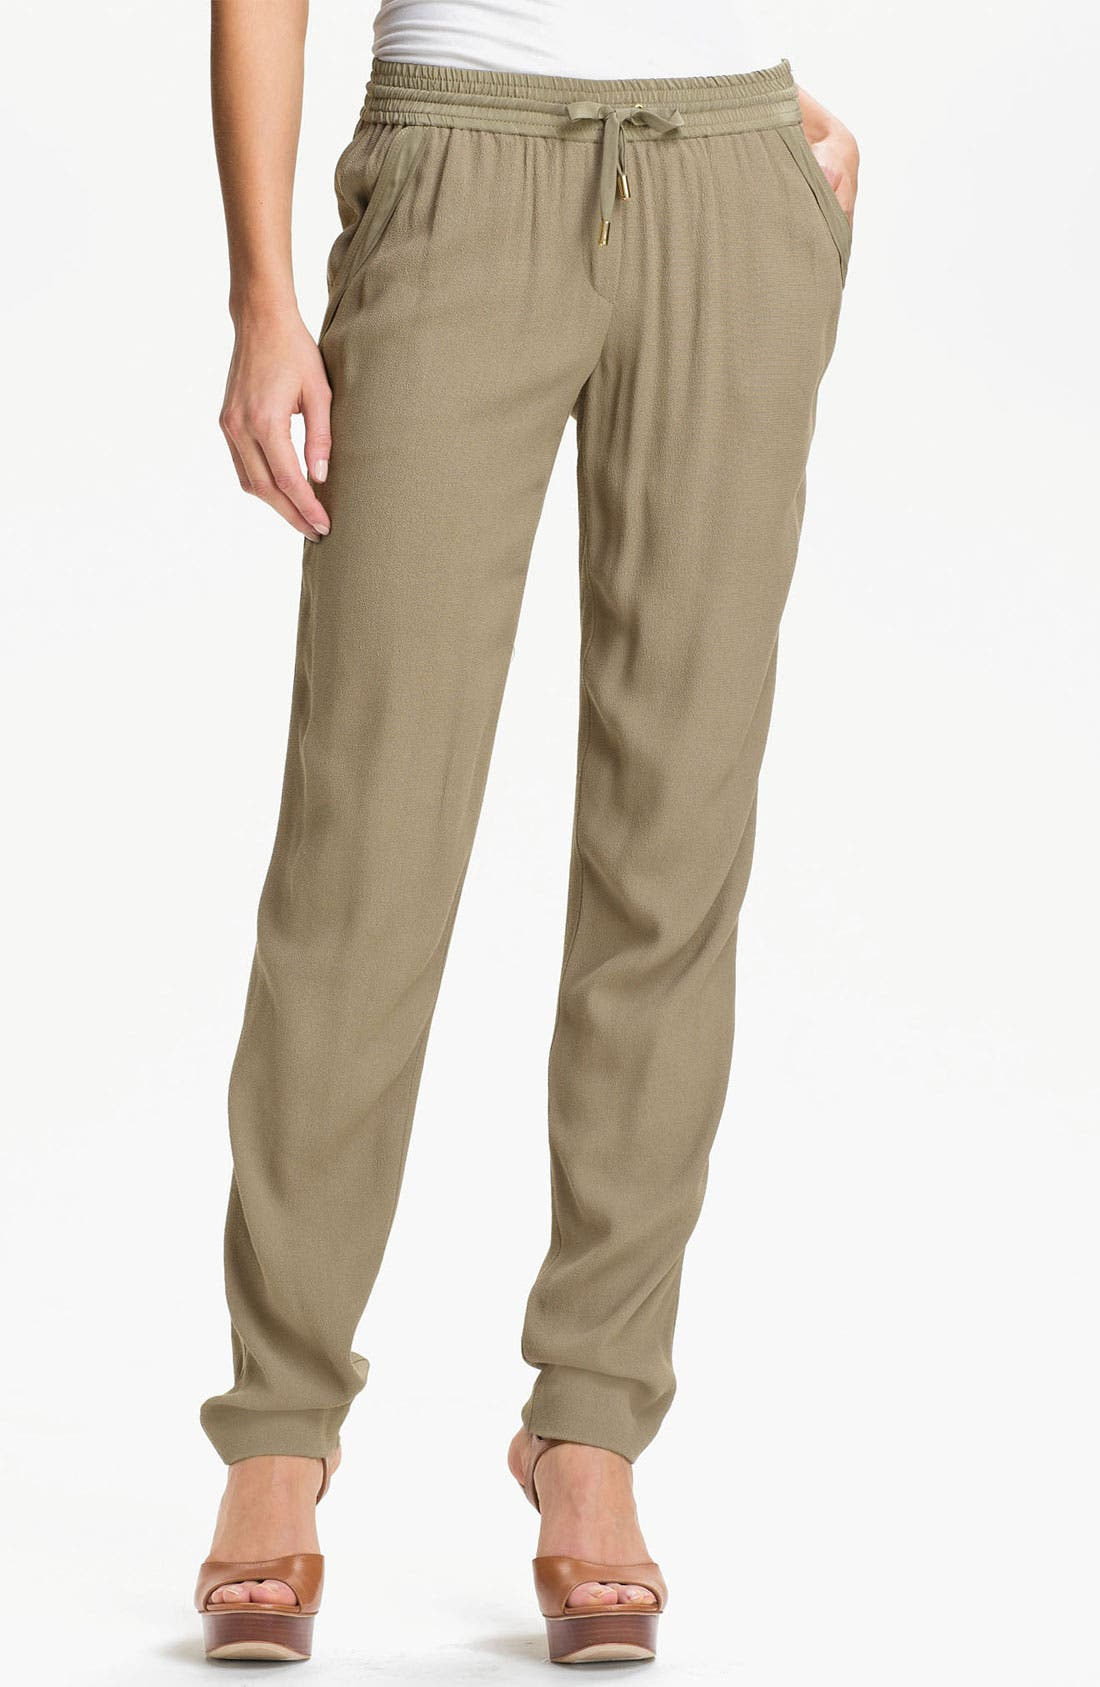 Alternate Image 1 Selected - MICHAEL Michael Kors Drawstring Waist Pants